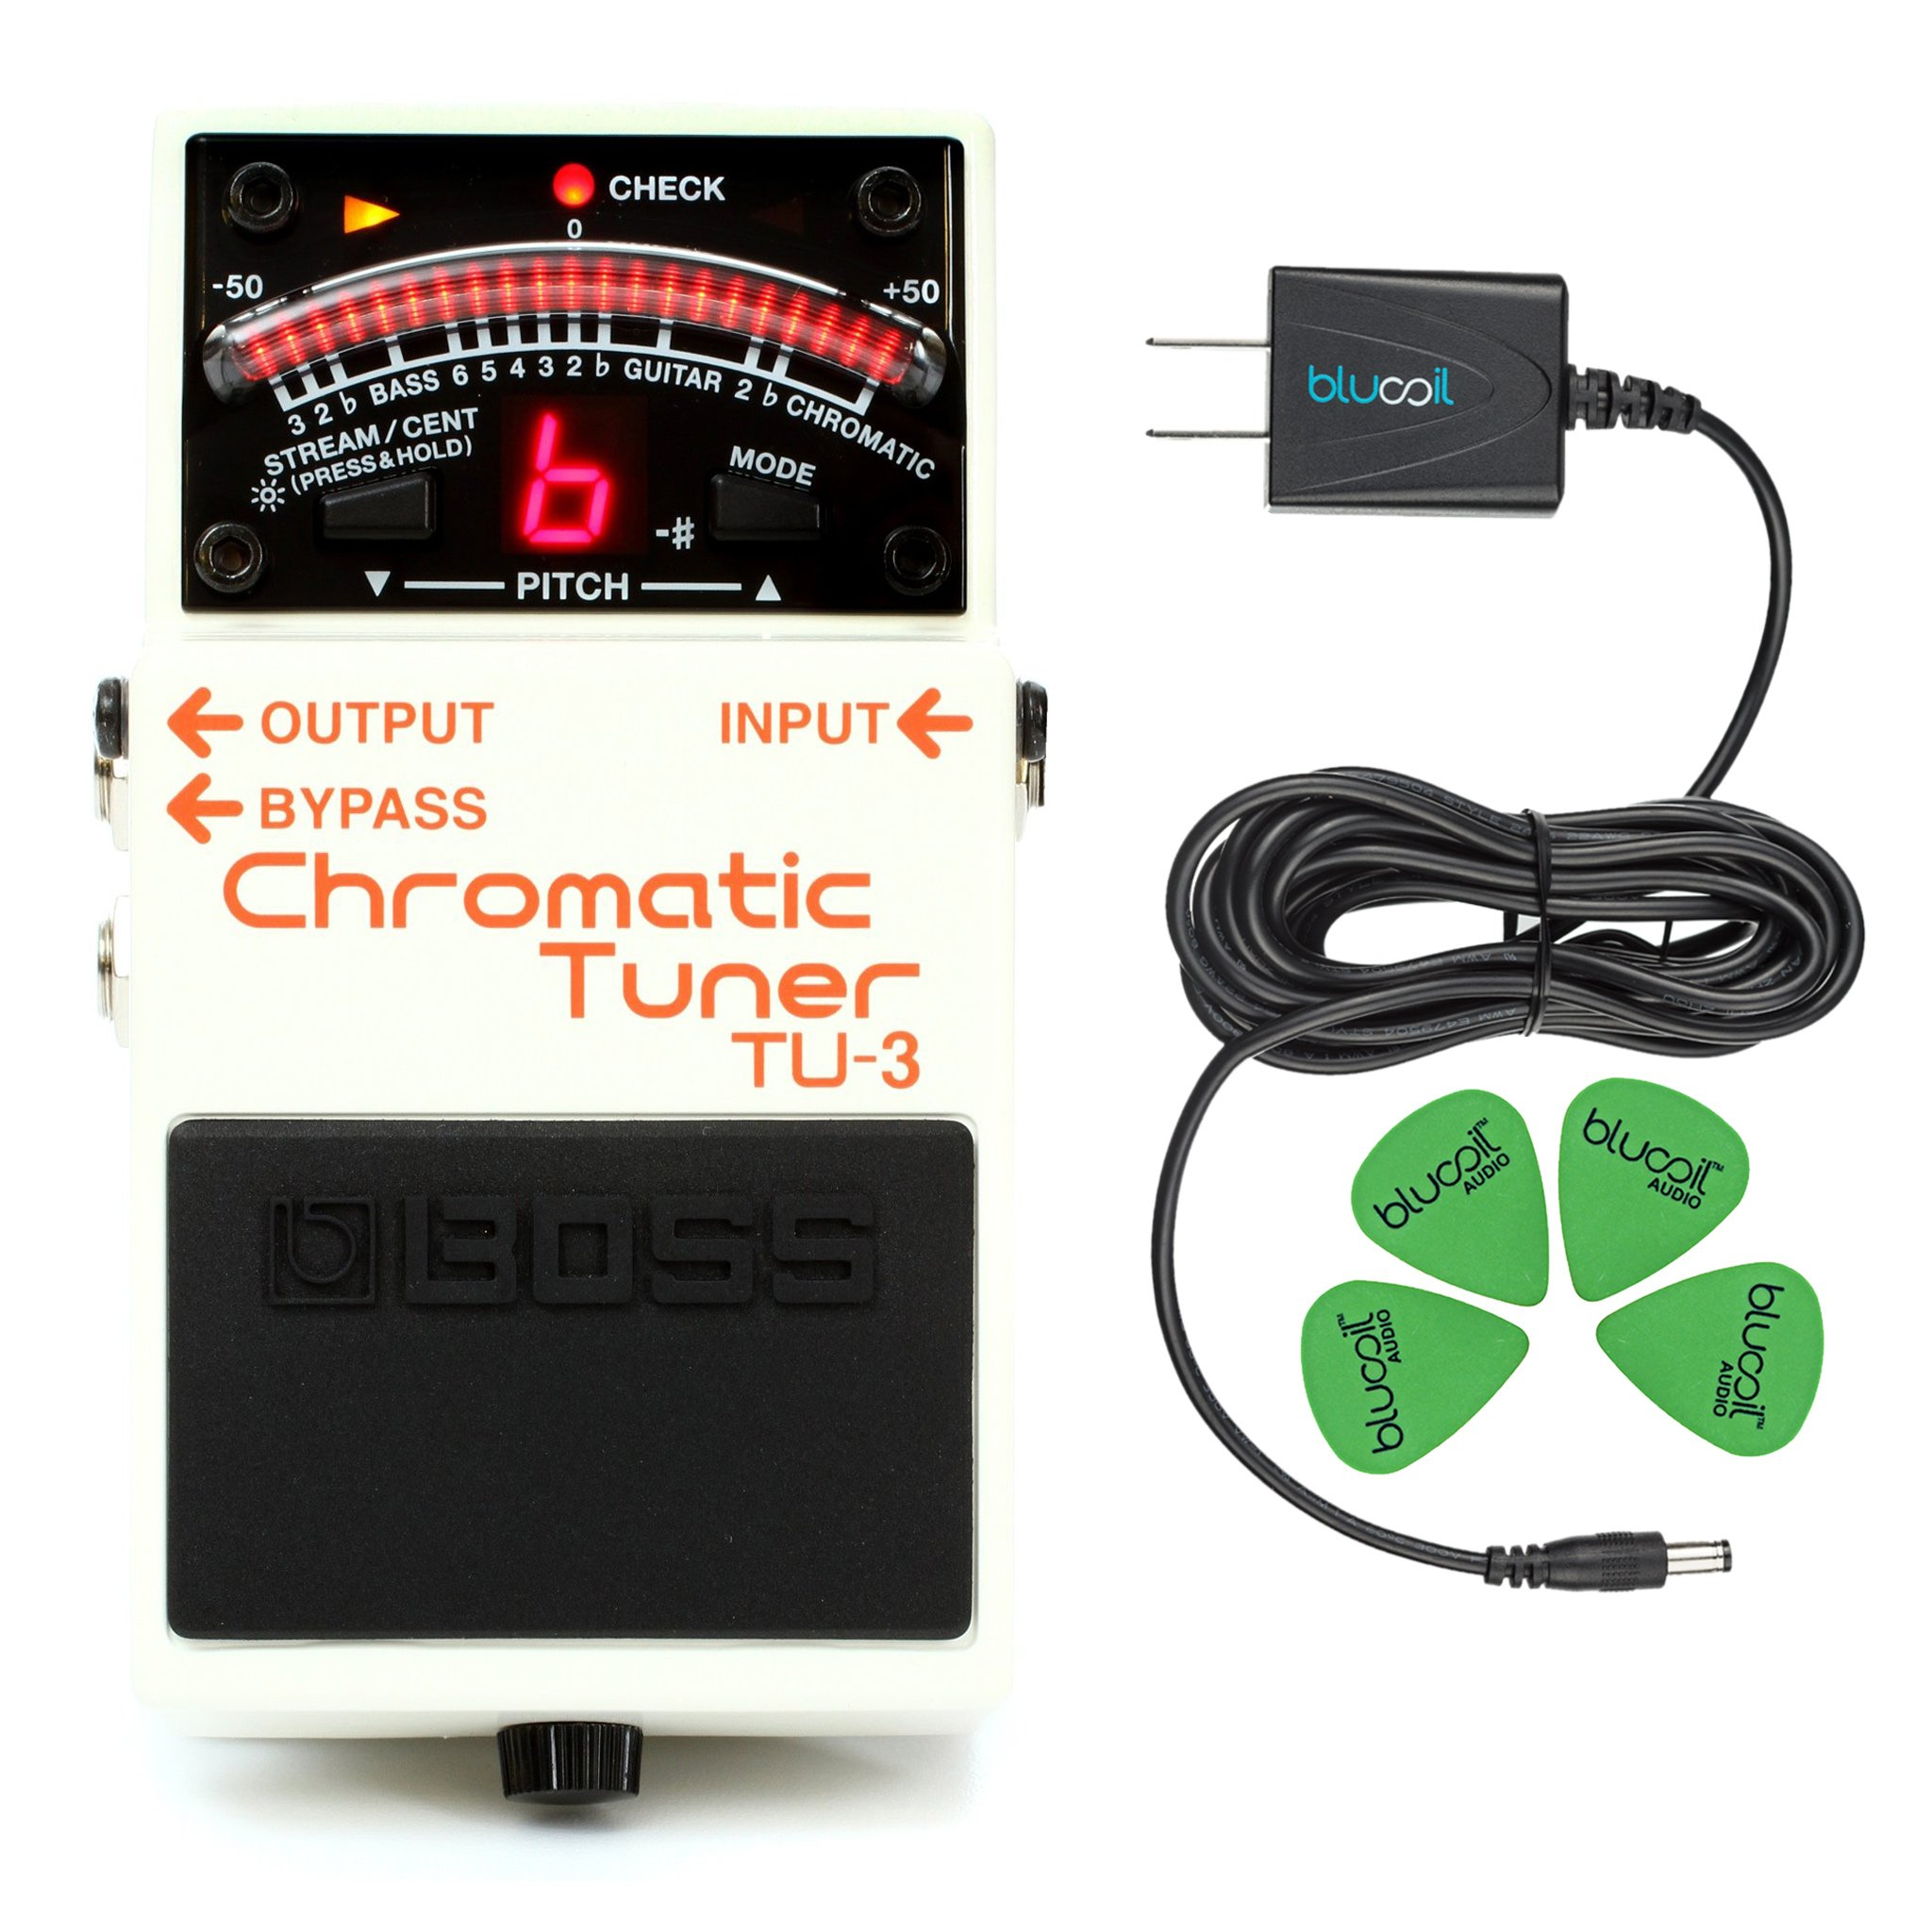 BOSS TU-3 Chromatic Tuner for Electric & Bass Guitars –INCLUDES– Blucoil Guitar Pedal Power Supply Adapter 9 Volt 670mA for Guitar Pedals AND Guitar Picks